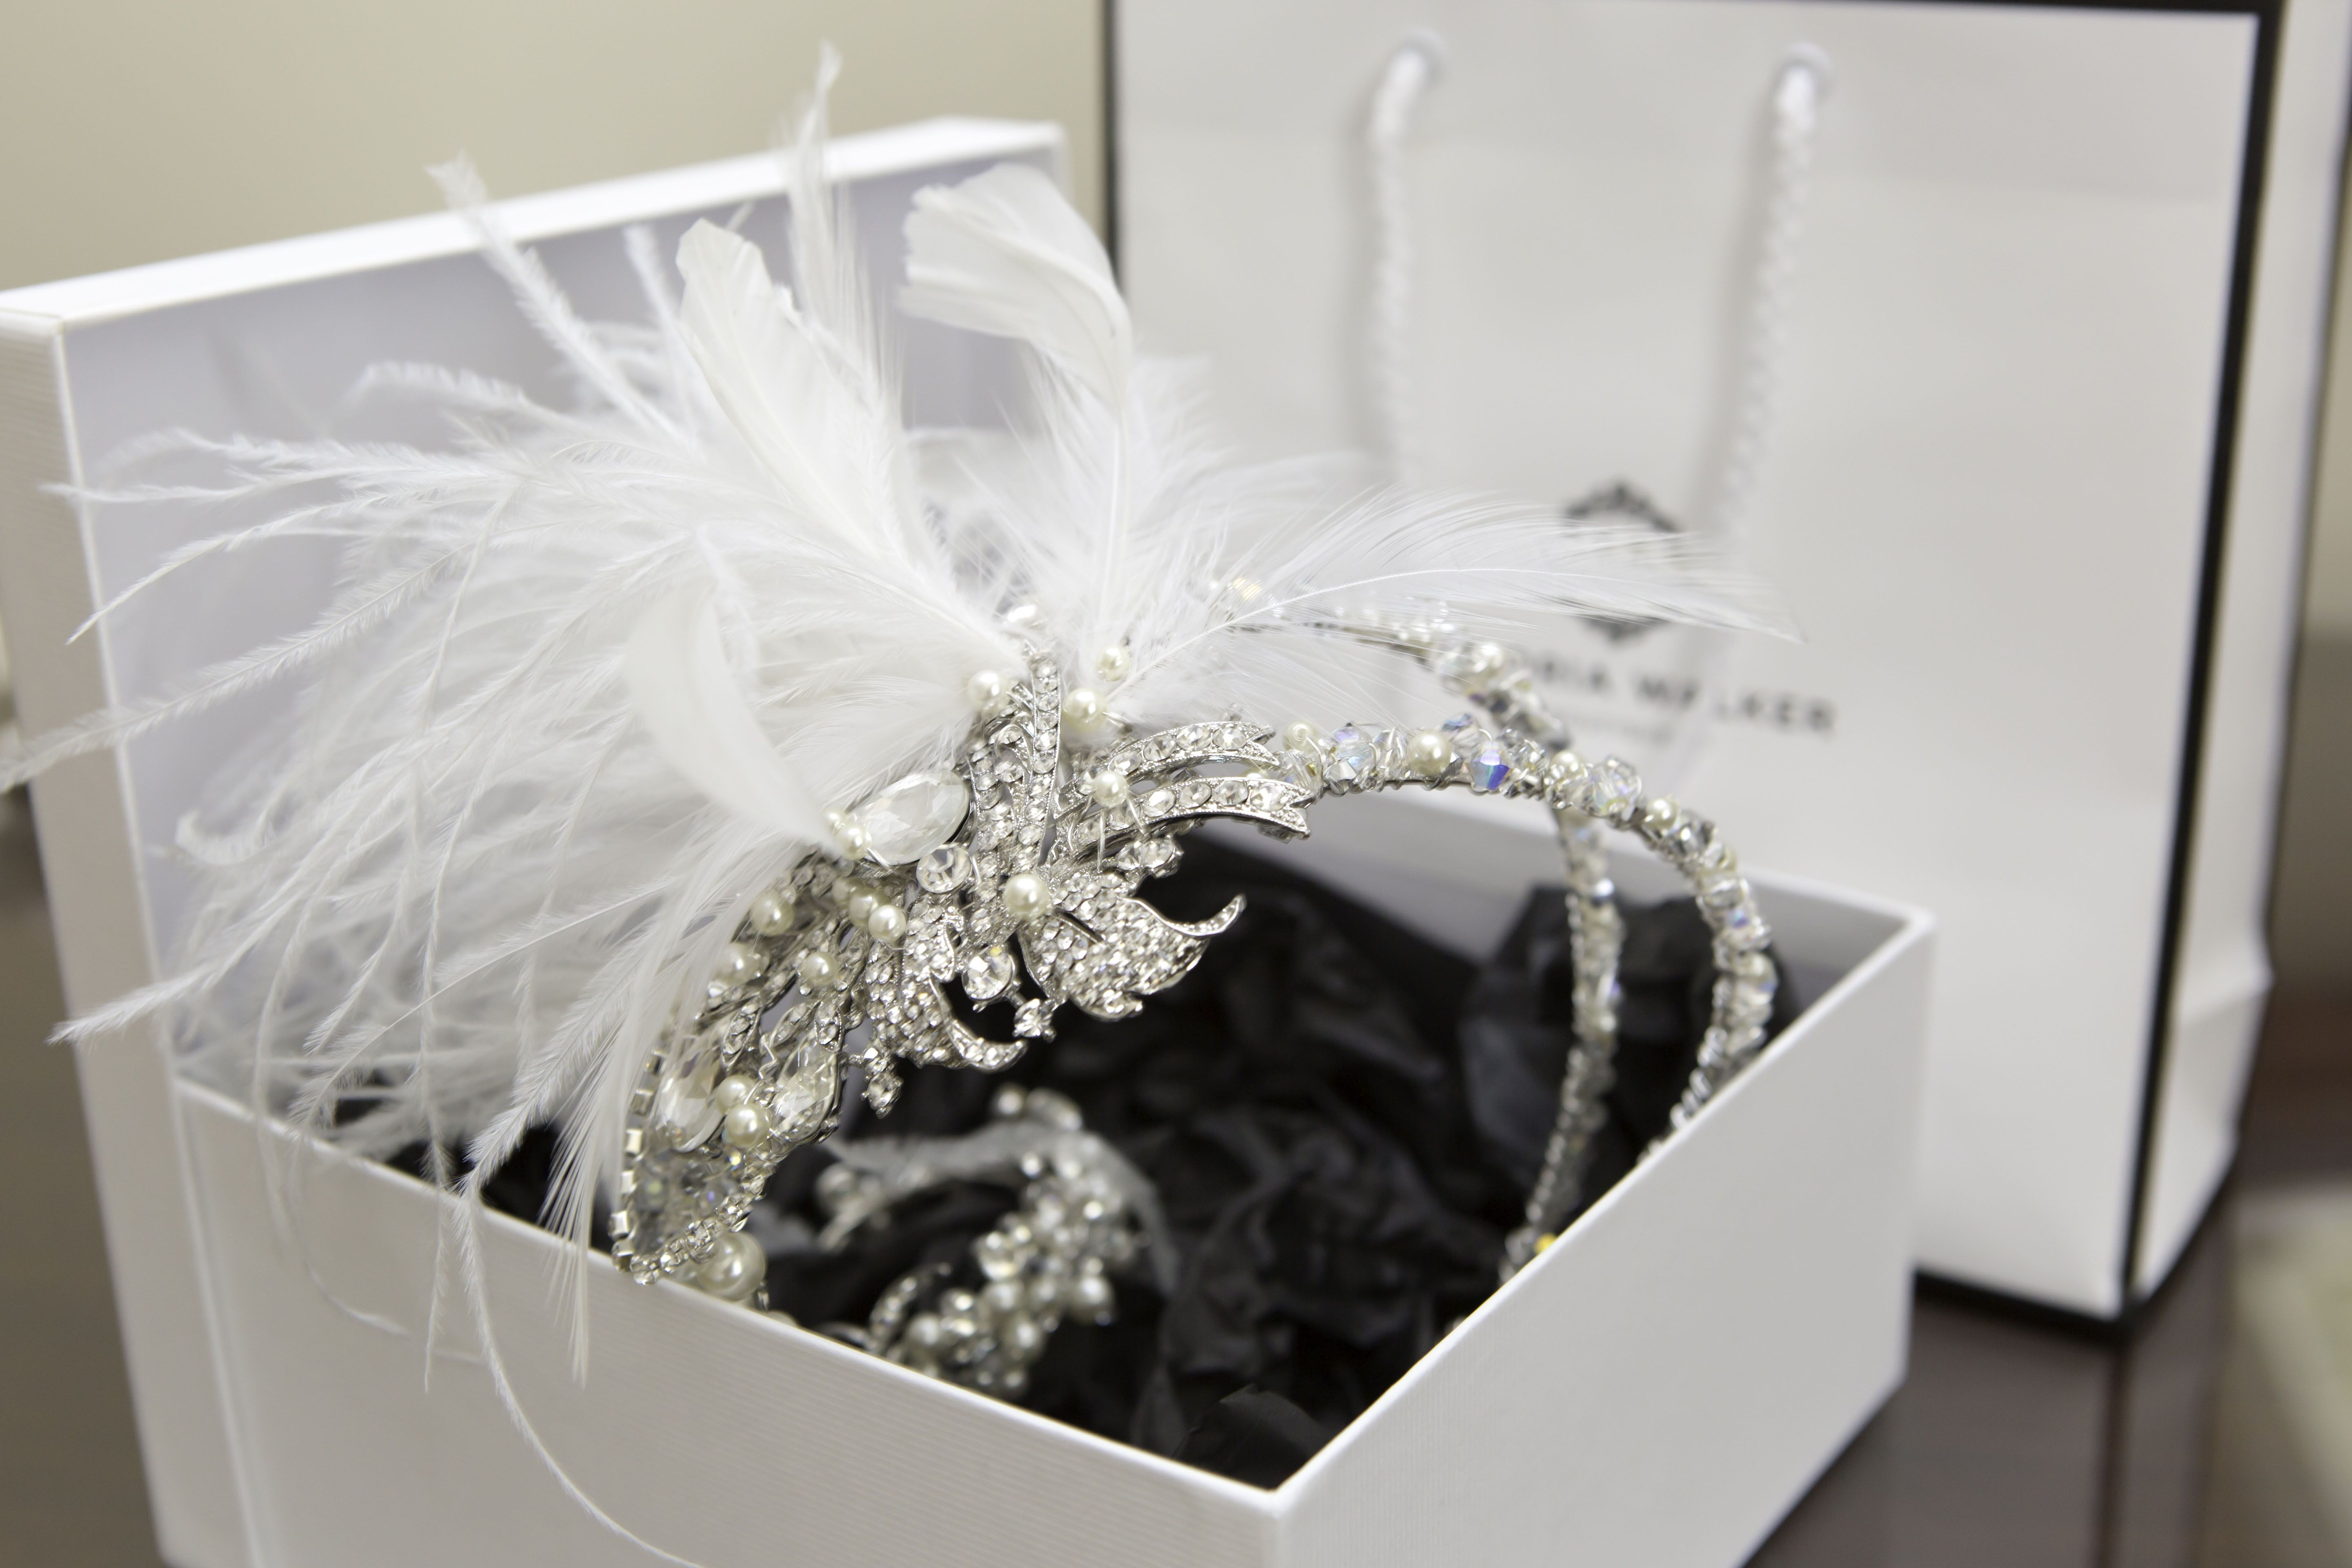 Bespoke Bridal hair accessories designed and created by Victoria Walker Boutique